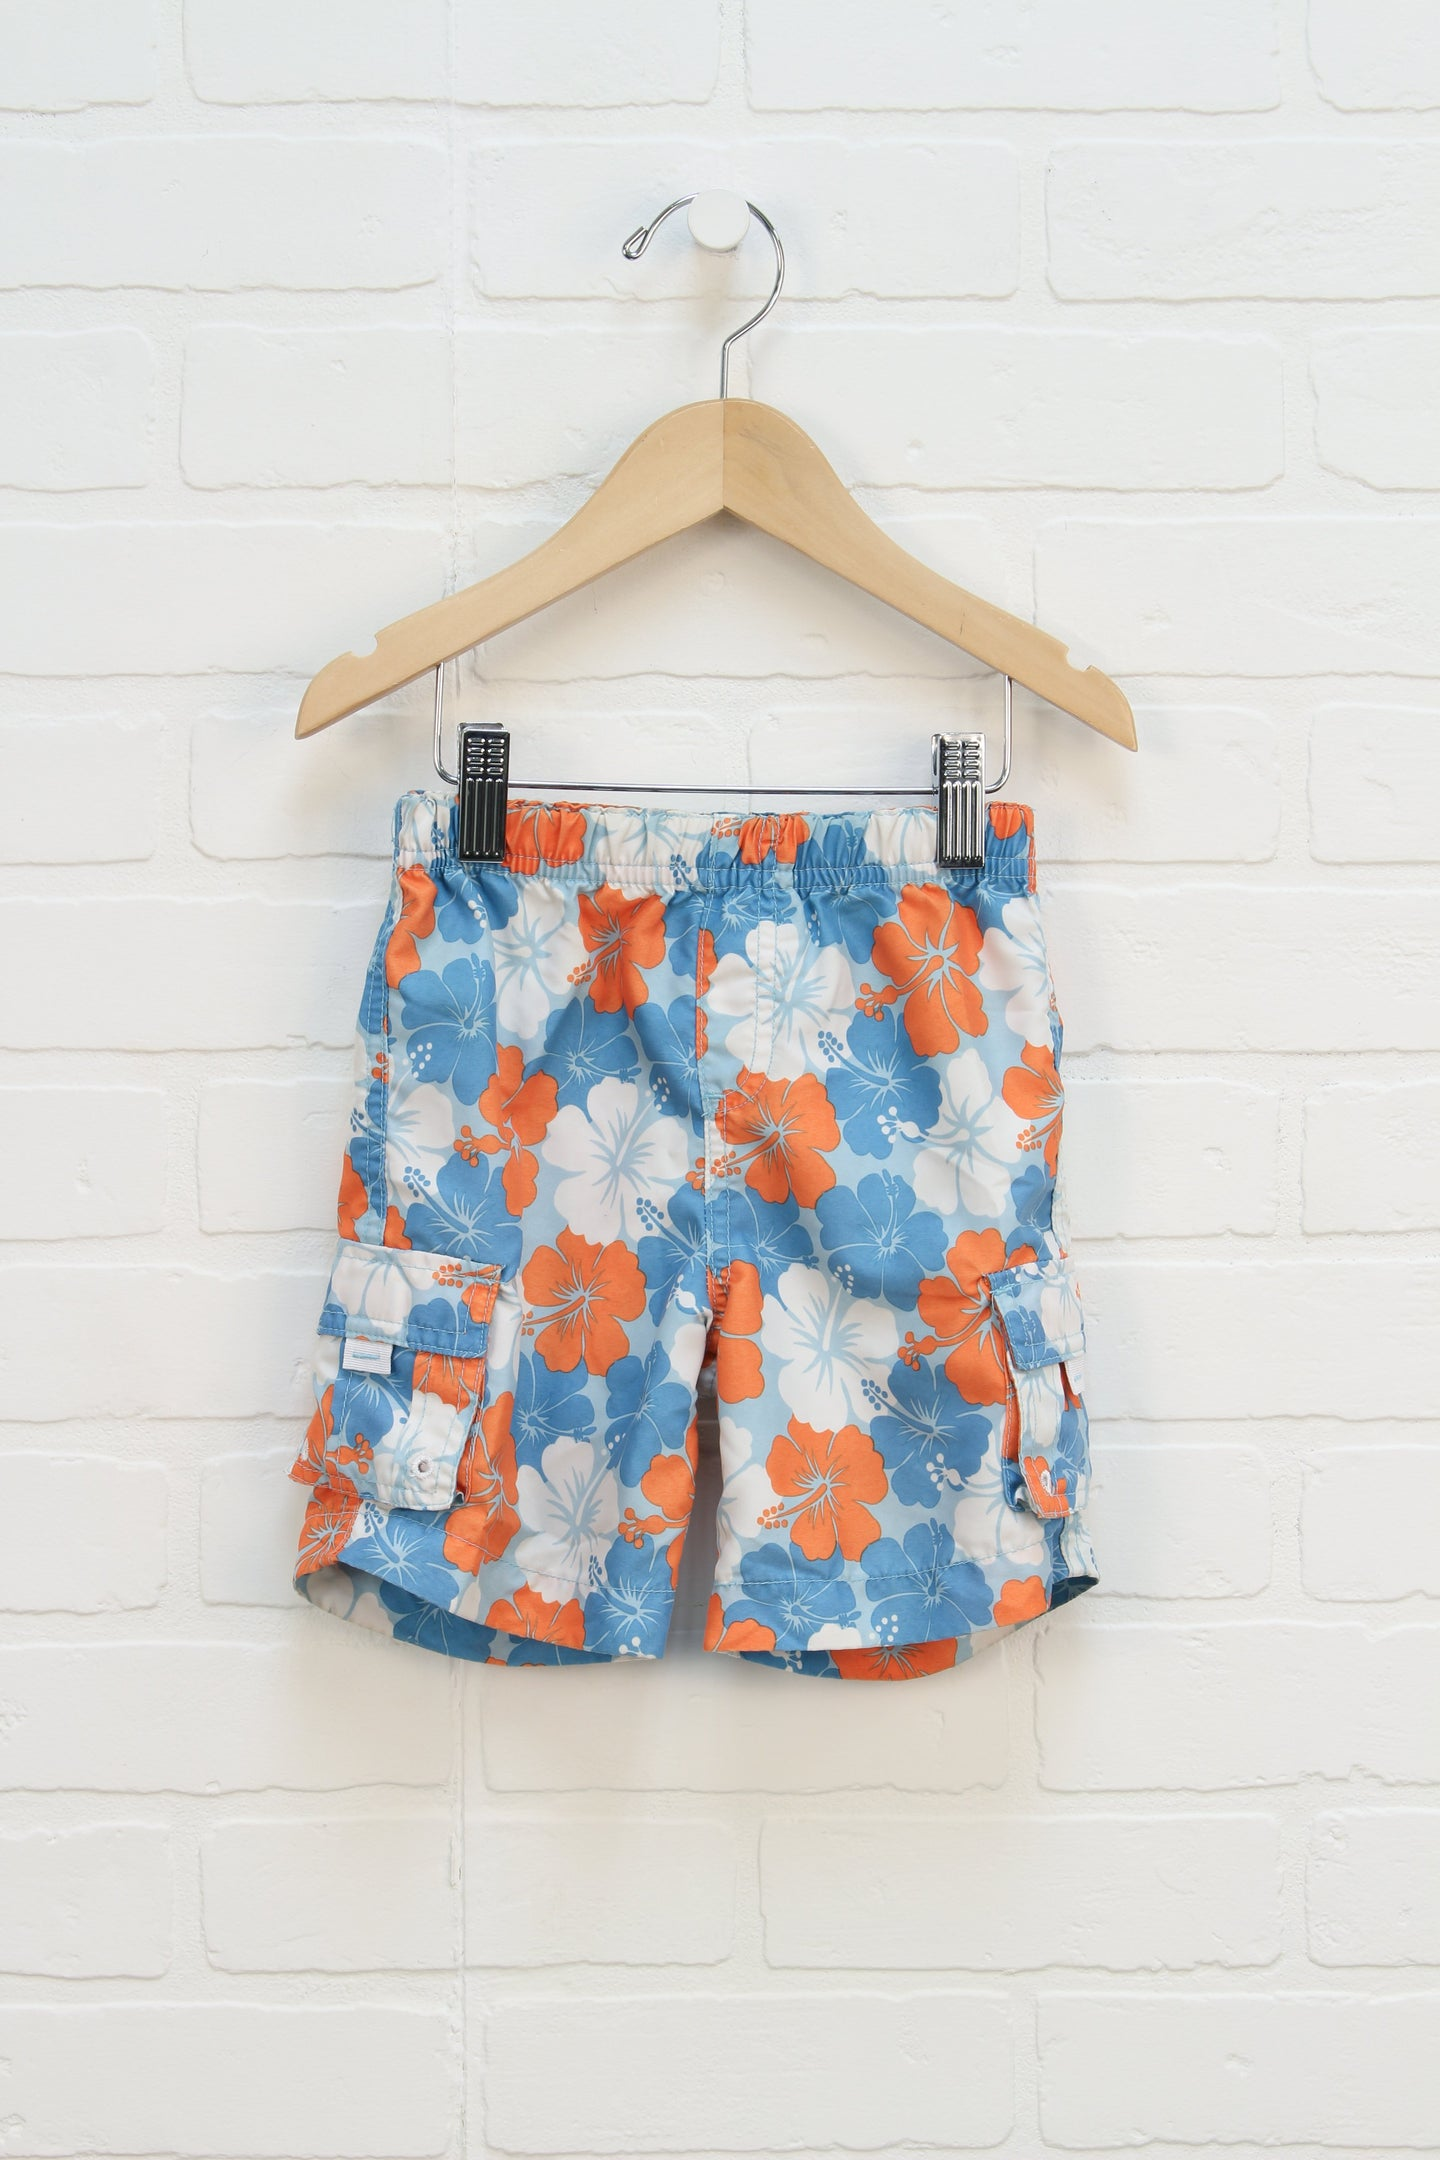 Turquoise + Tangerine Floral Swim Trunks (Size 24M)